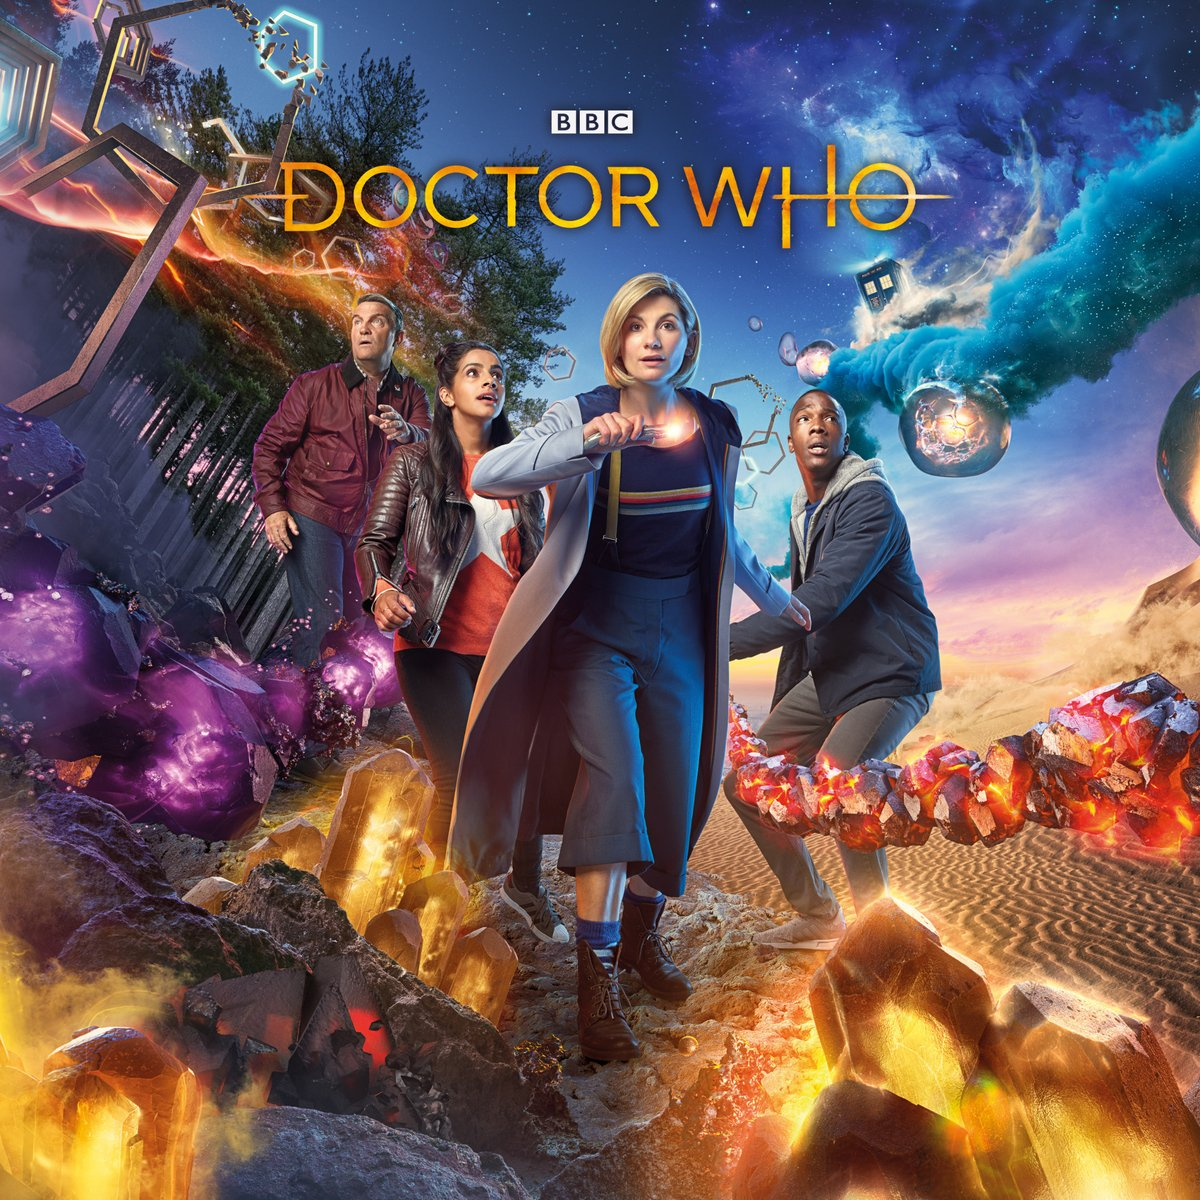 Doctor Who Key Art Brings the New Gang Together